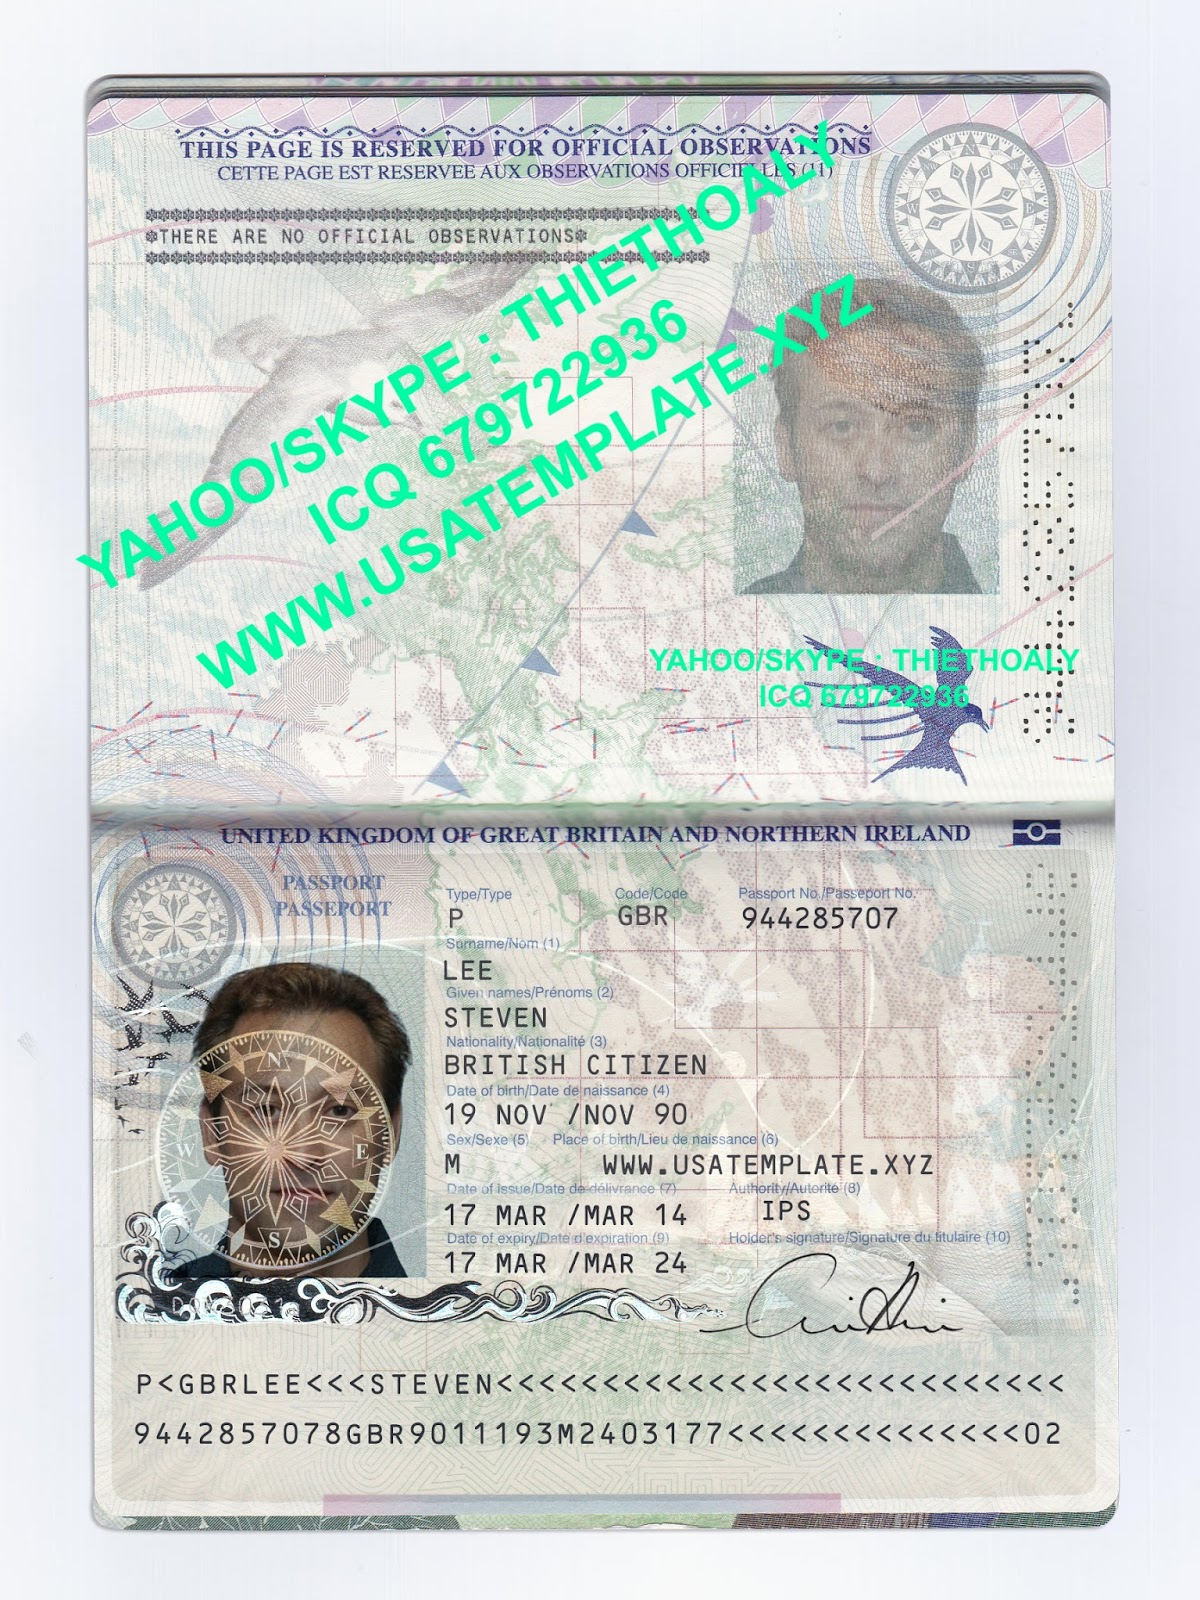 NEW UK PASSPORT TEMPLATE PSD - PSD TEMPLATE USA, UK,EU,CA,AU,ASIA ...